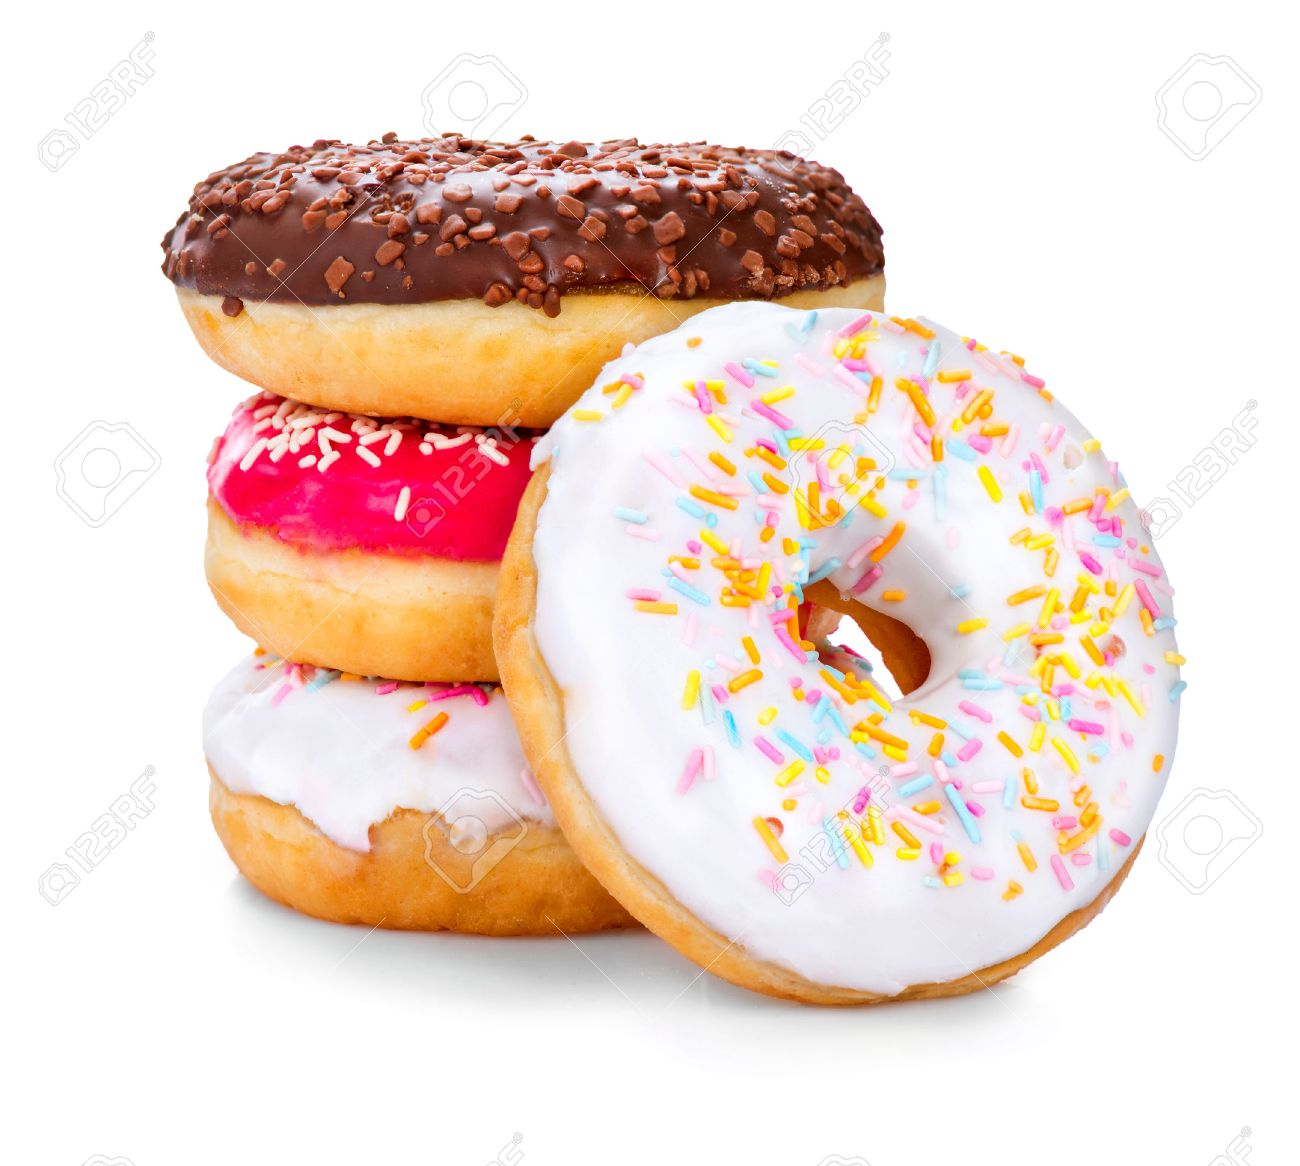 donuts isolated on white background tasty glazed donuts closeup